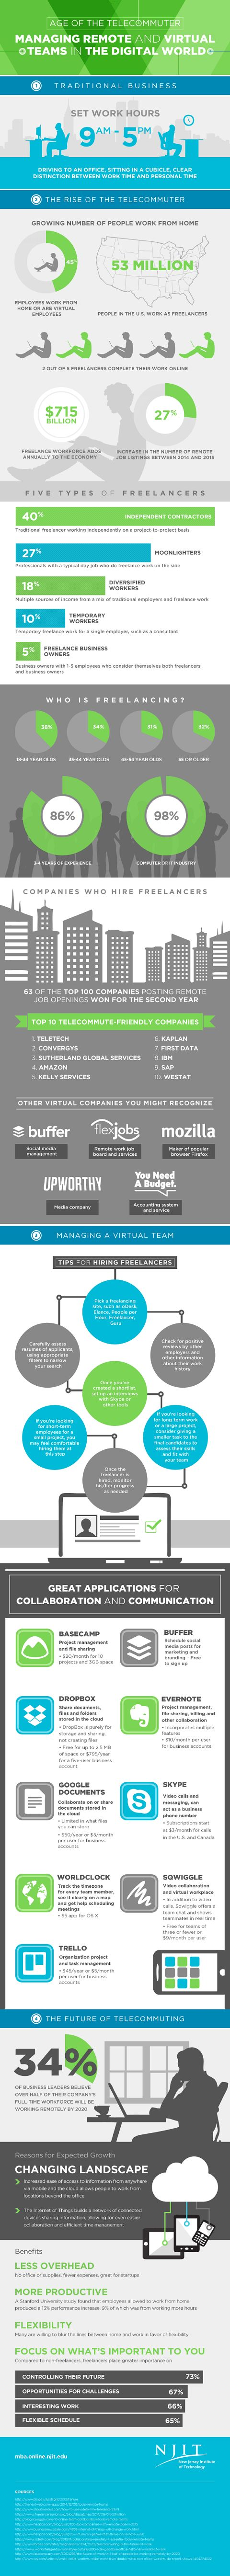 Age of the Telecommuter: Managing Remote and Virtual Teams in the Digital World #infographic #Career #Telecommuter